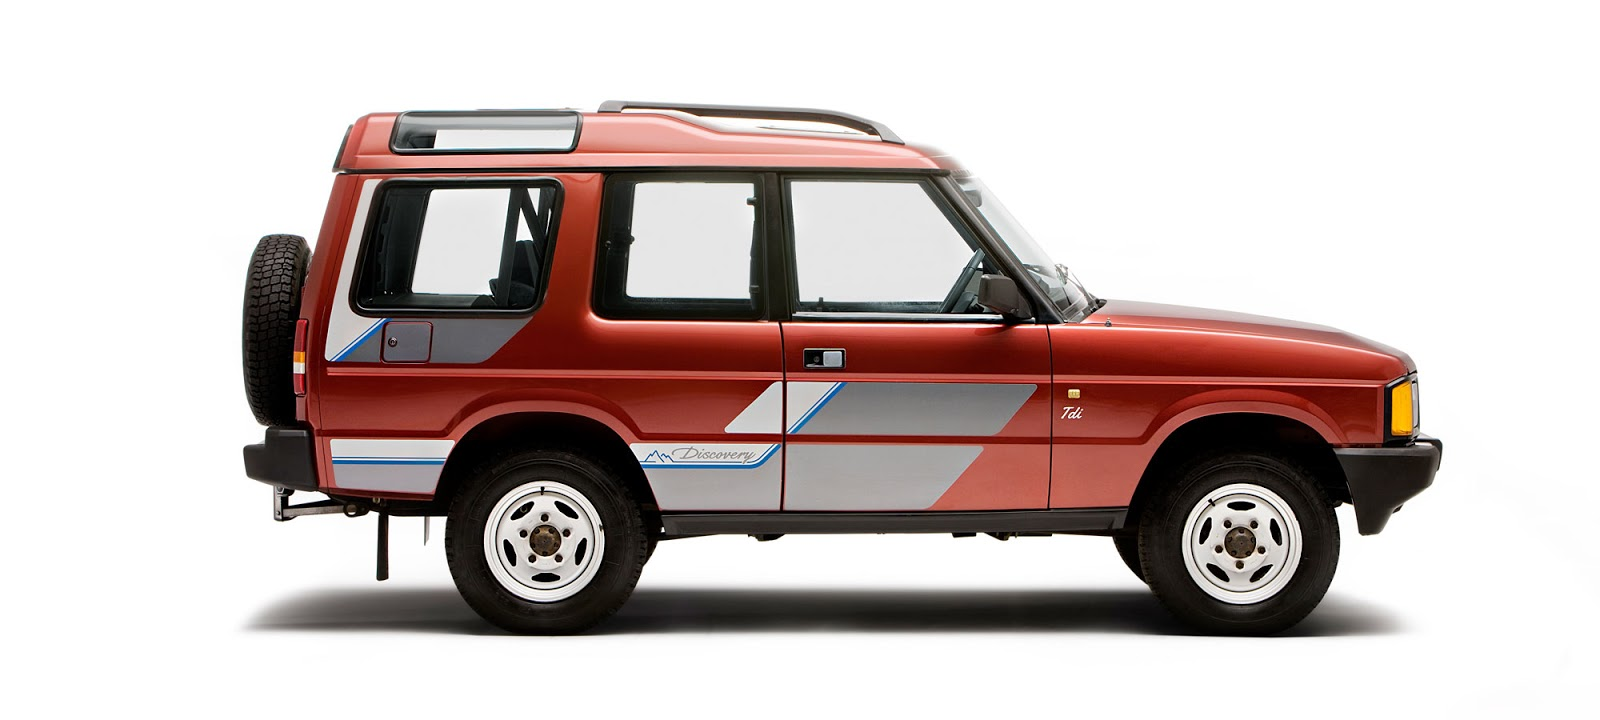 1989 Land Rover Discovery